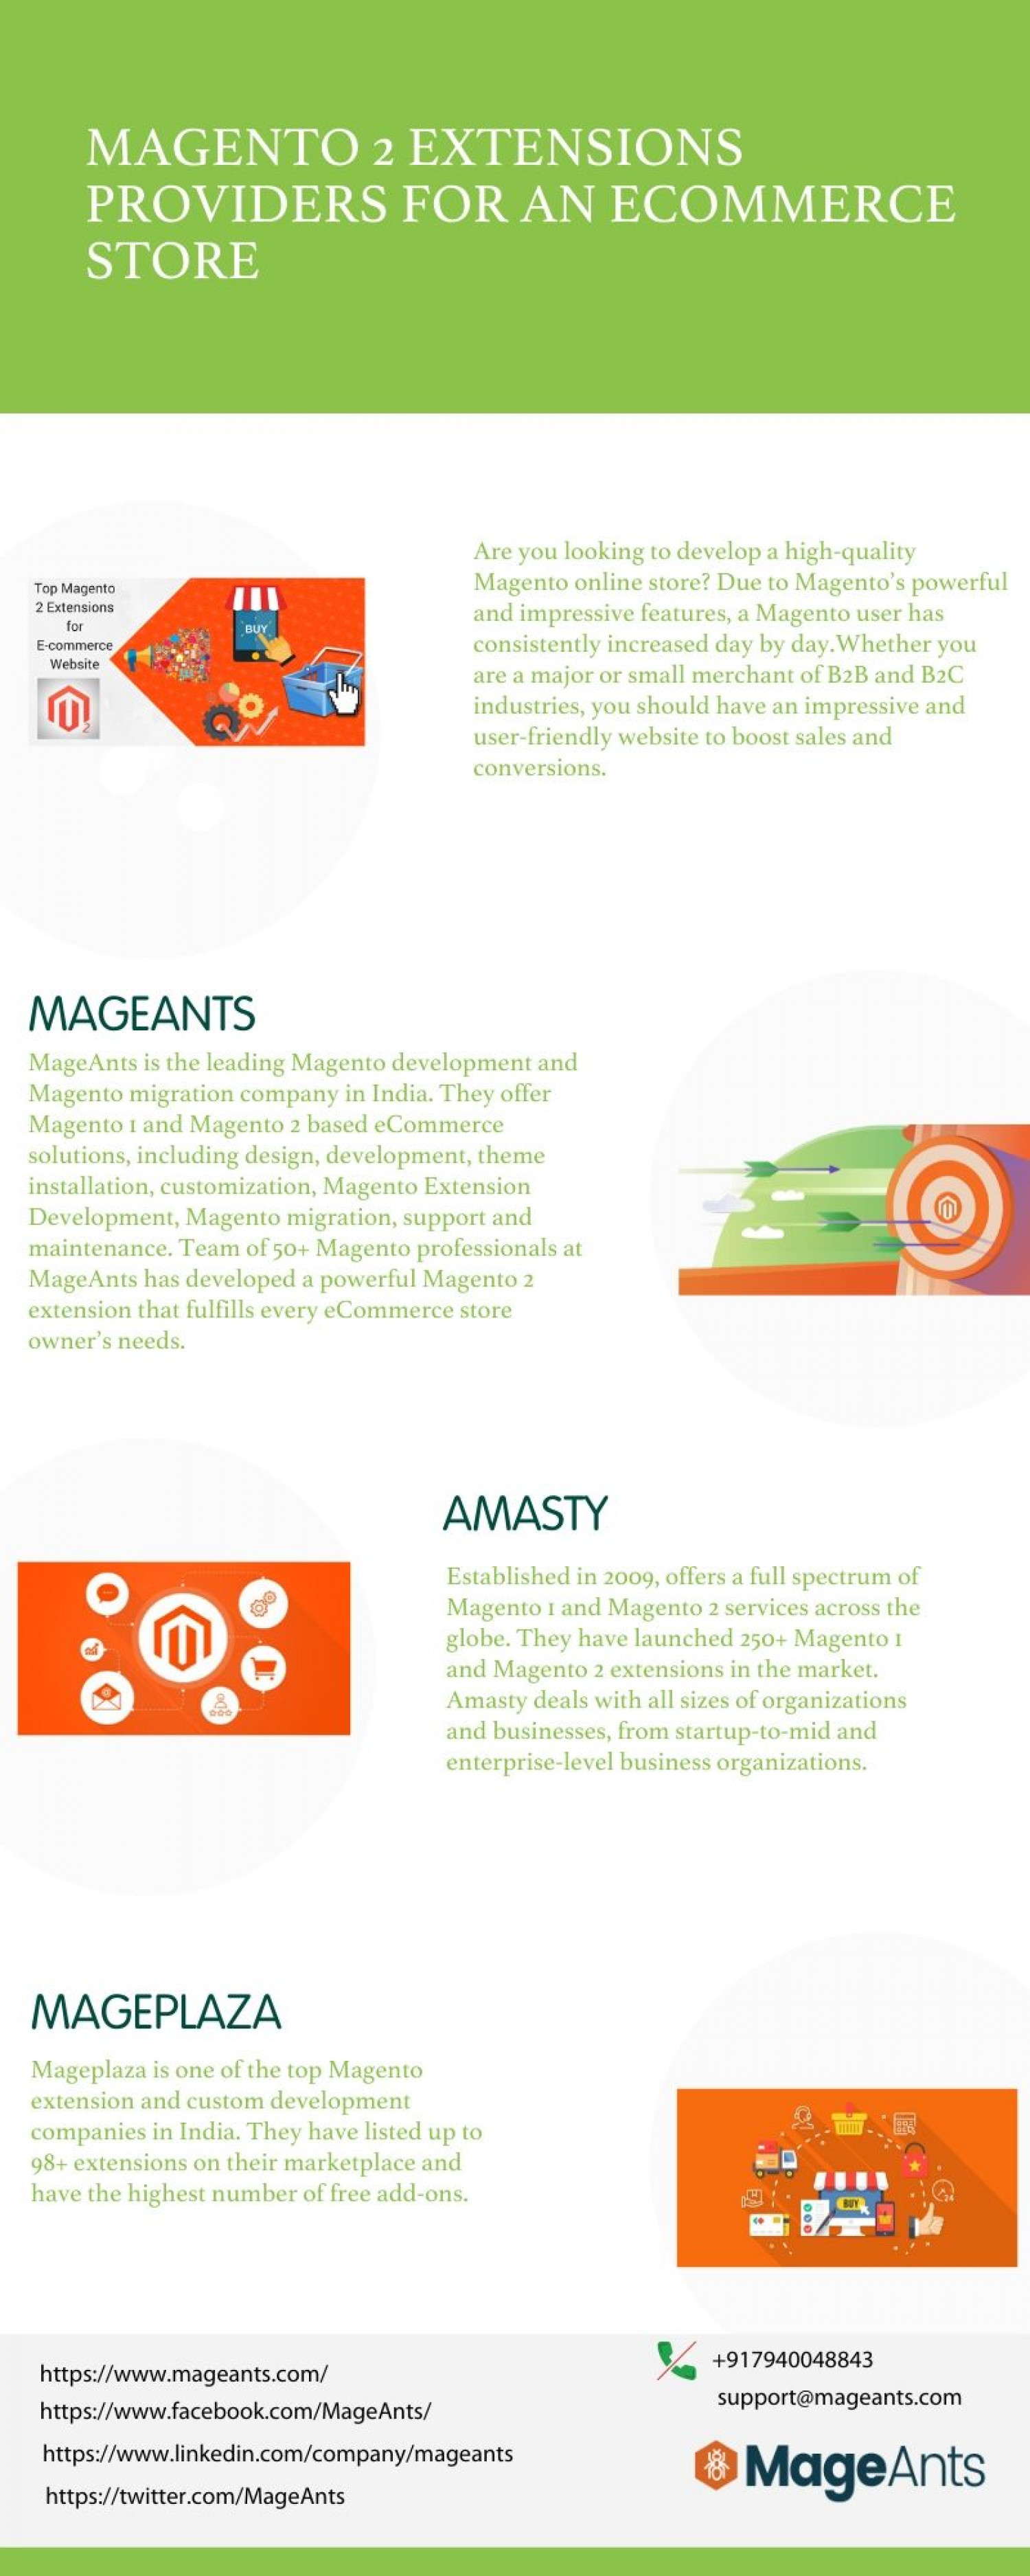 Magento 2 Extensions Providers for an eCommerce Store Infographic